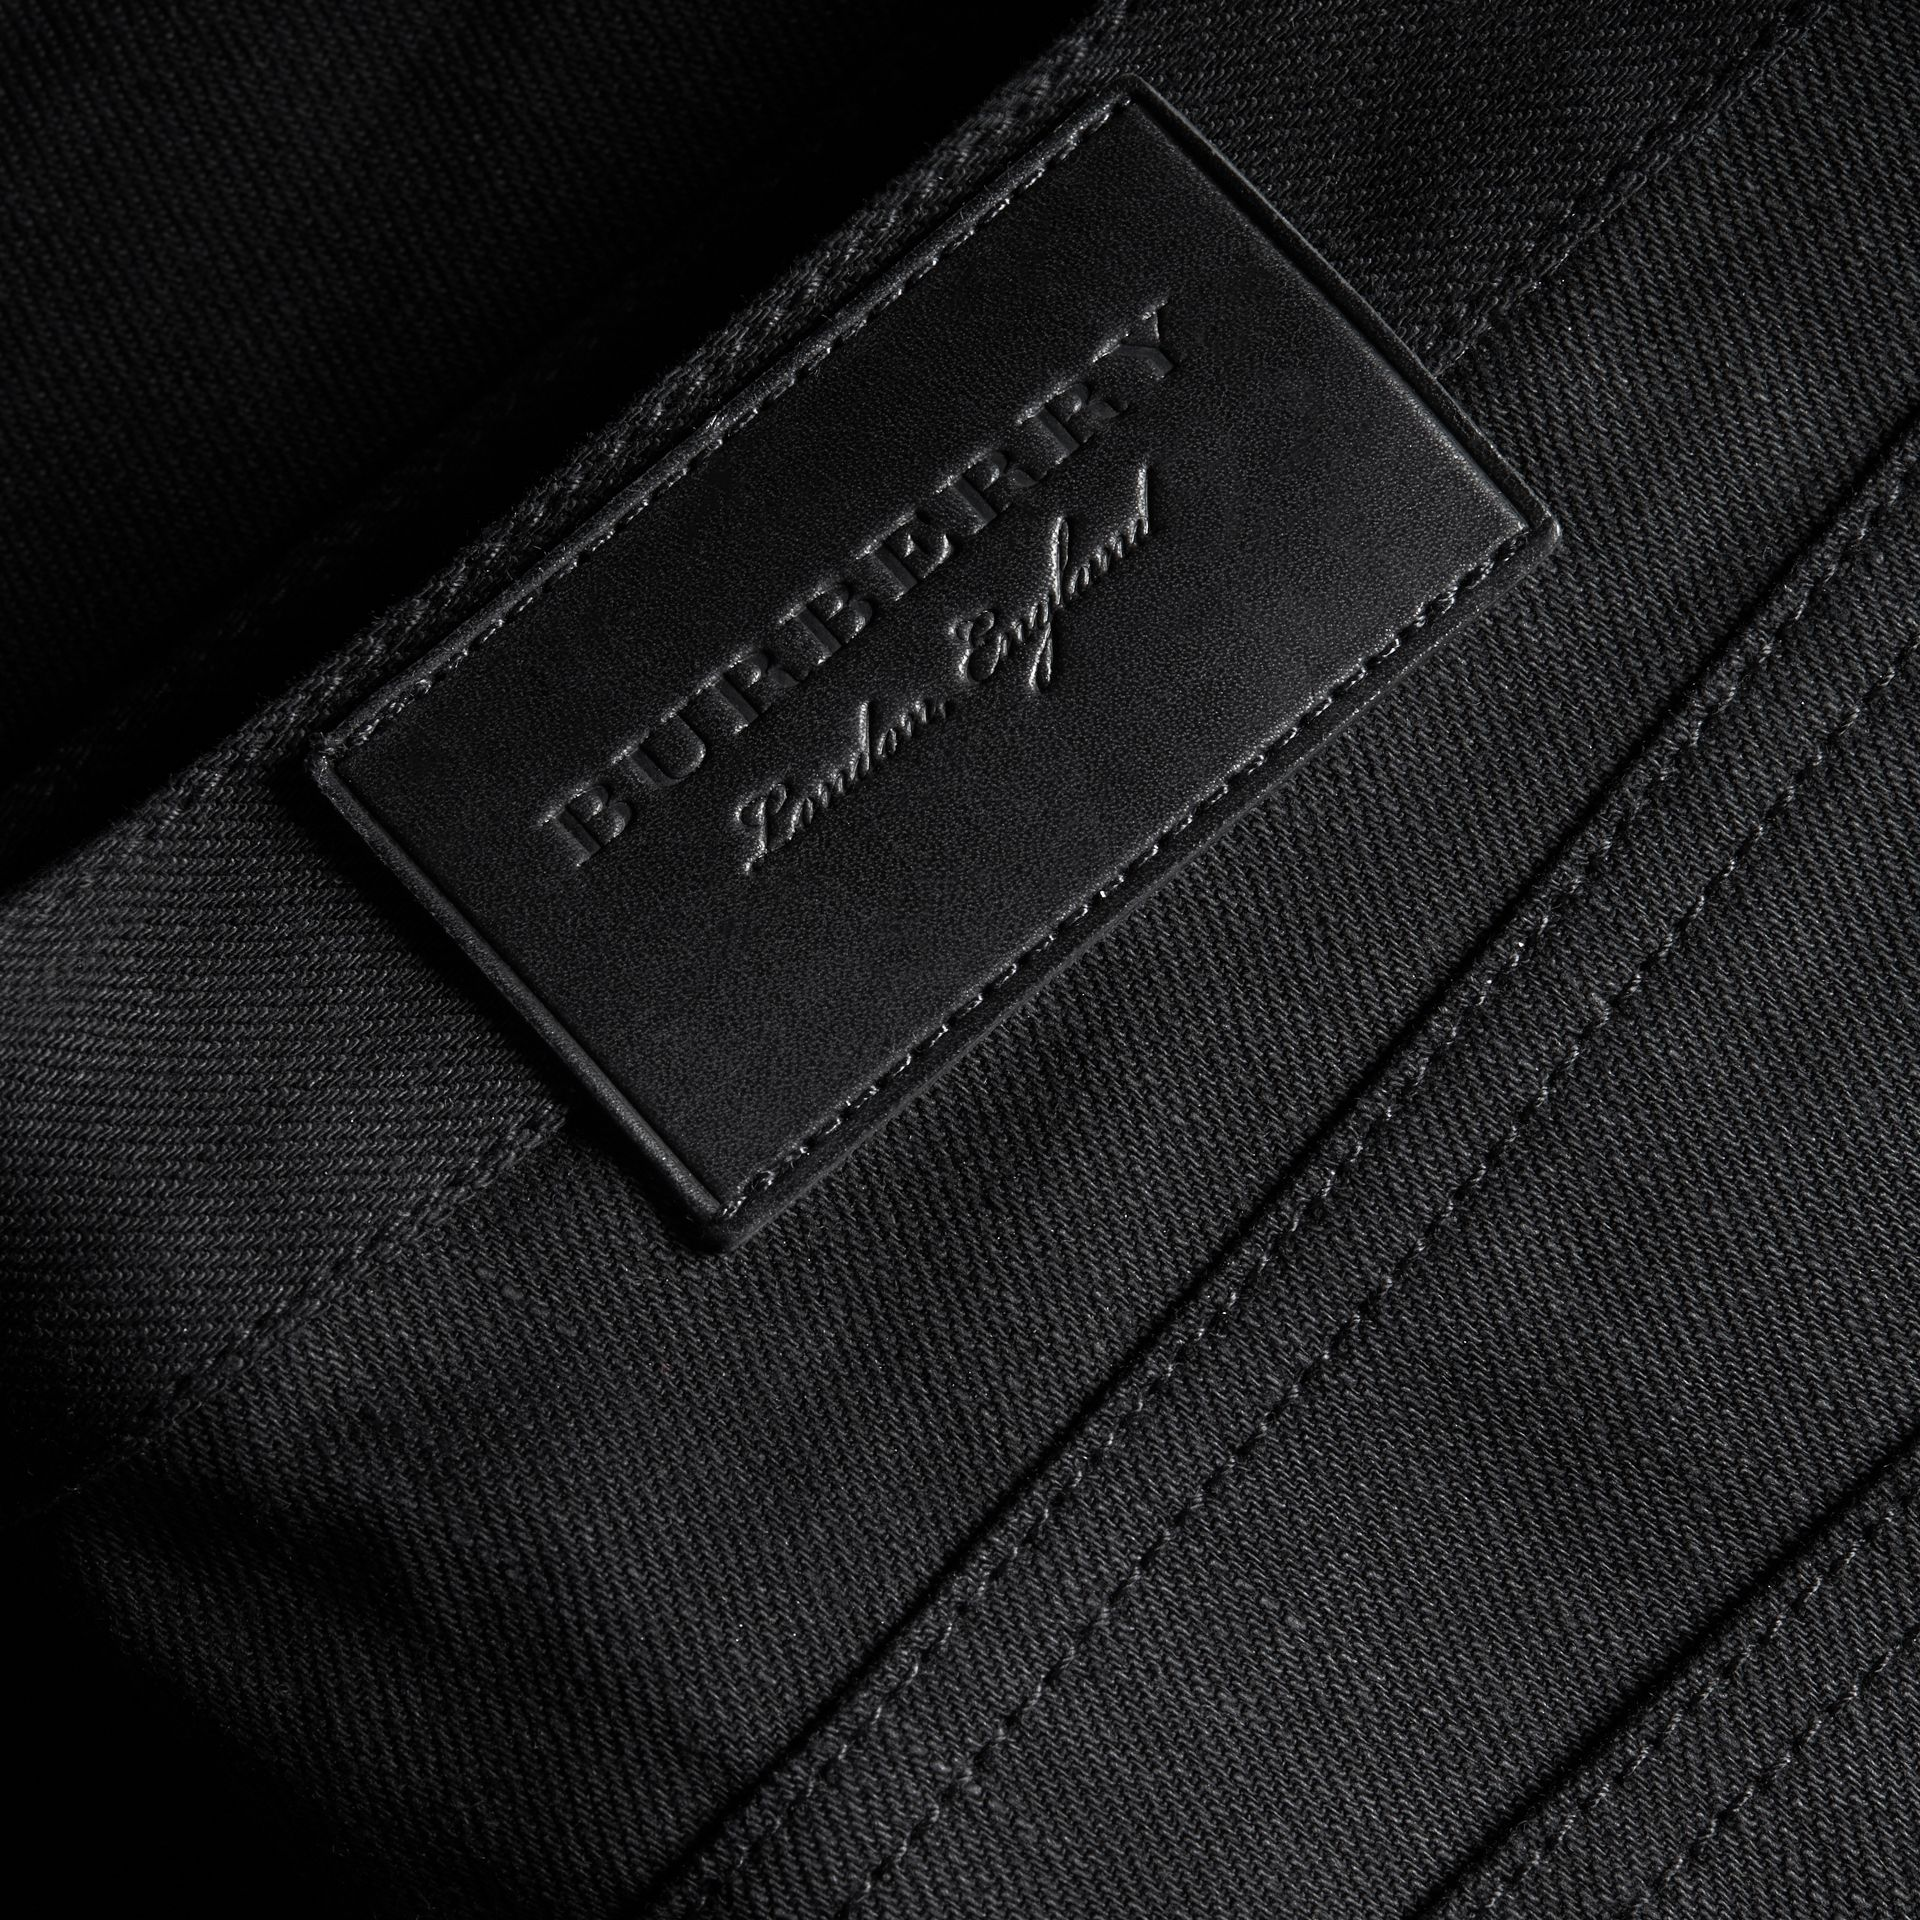 Slim Fit Japanese Denim Jeans in Black - Men | Burberry - gallery image 1